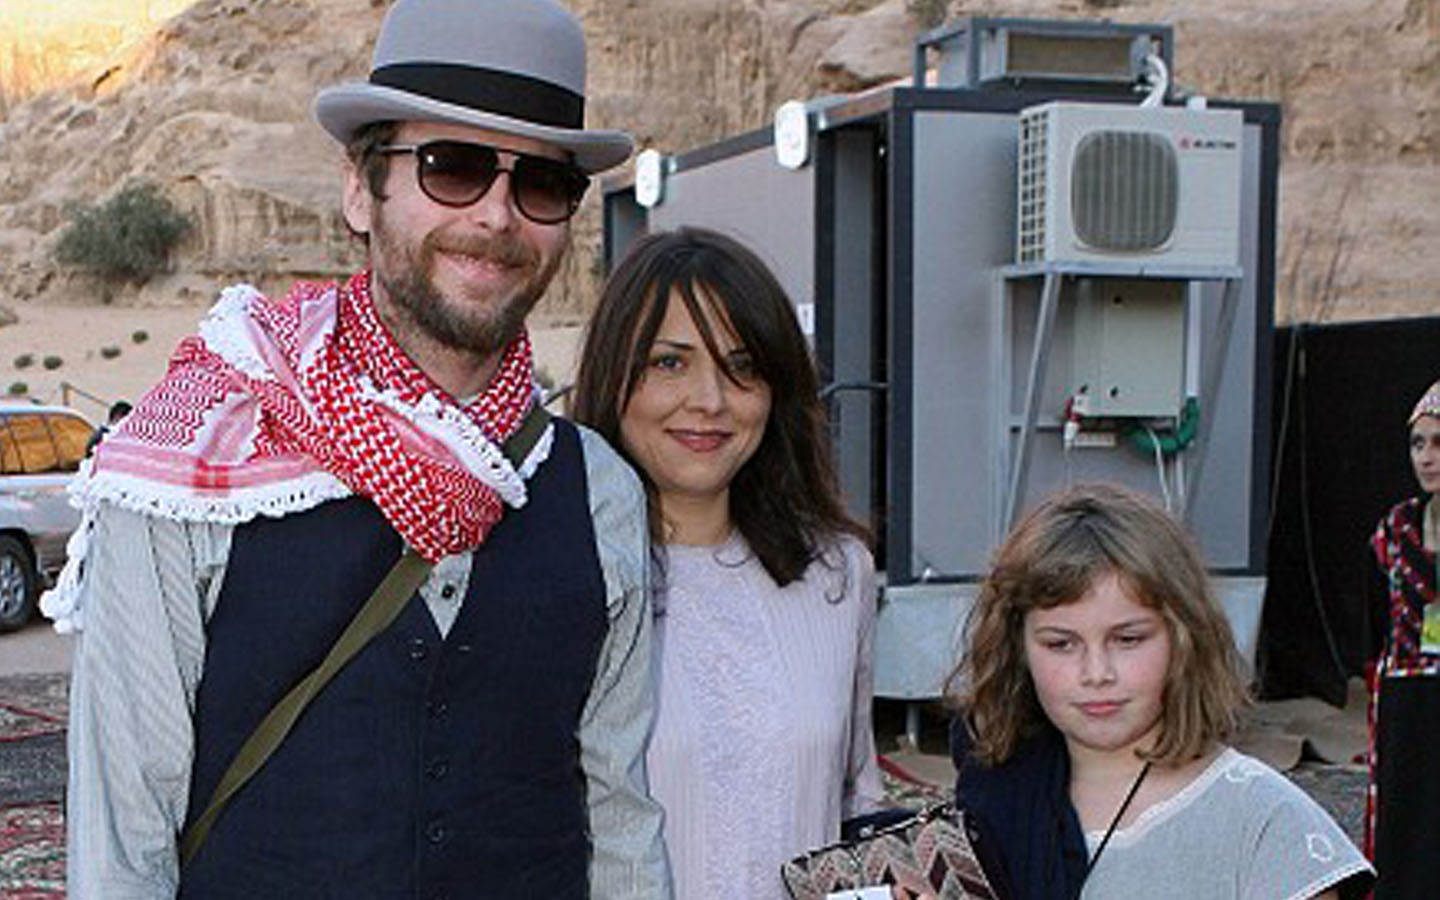 Jovanotti with his wife and daughter